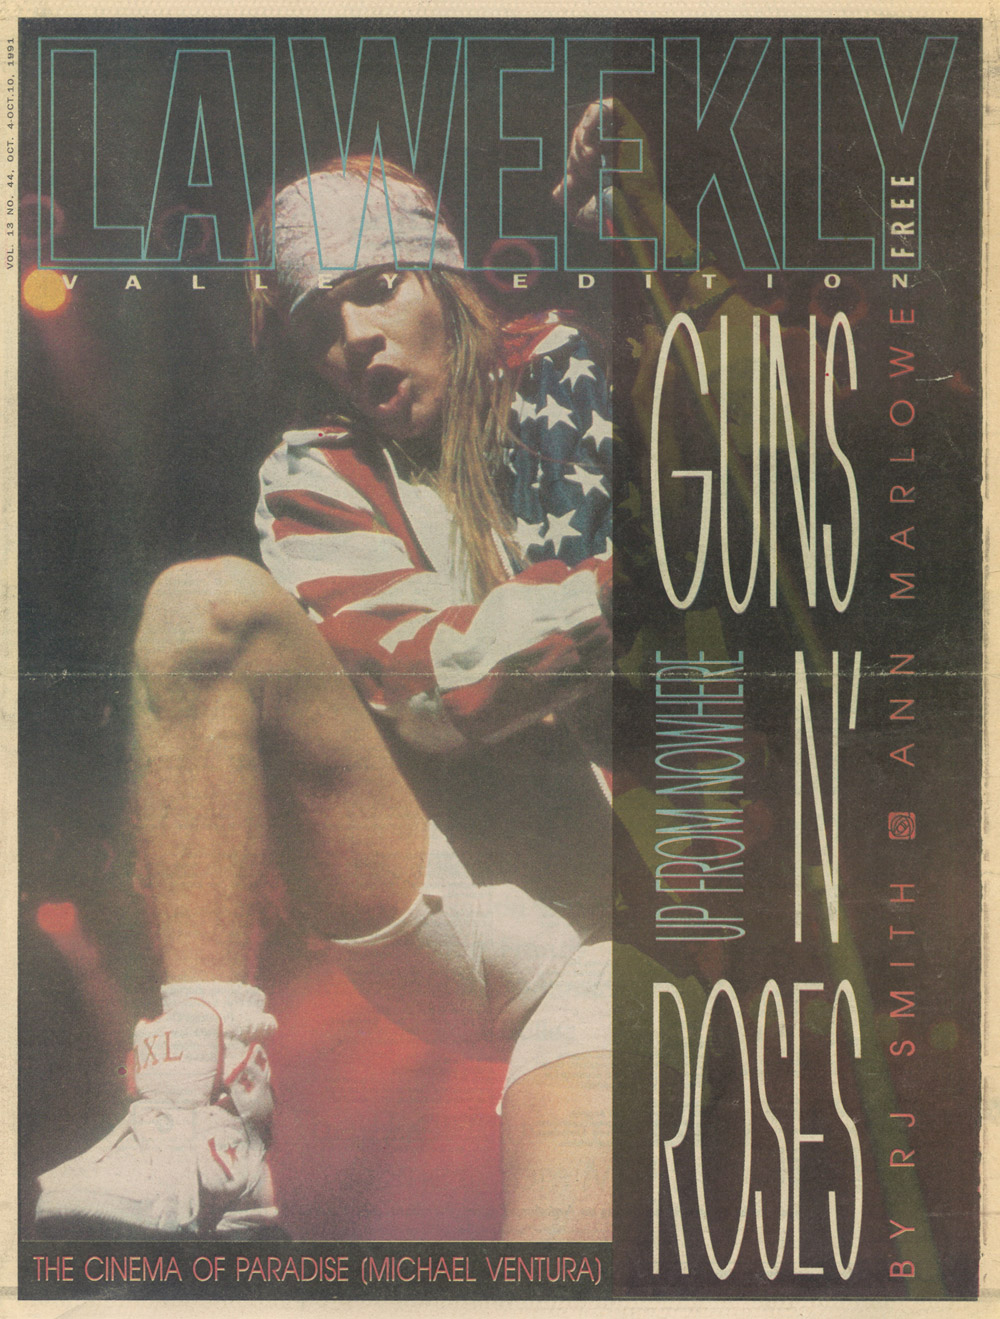 la_weekly_gnr_cover.jpg